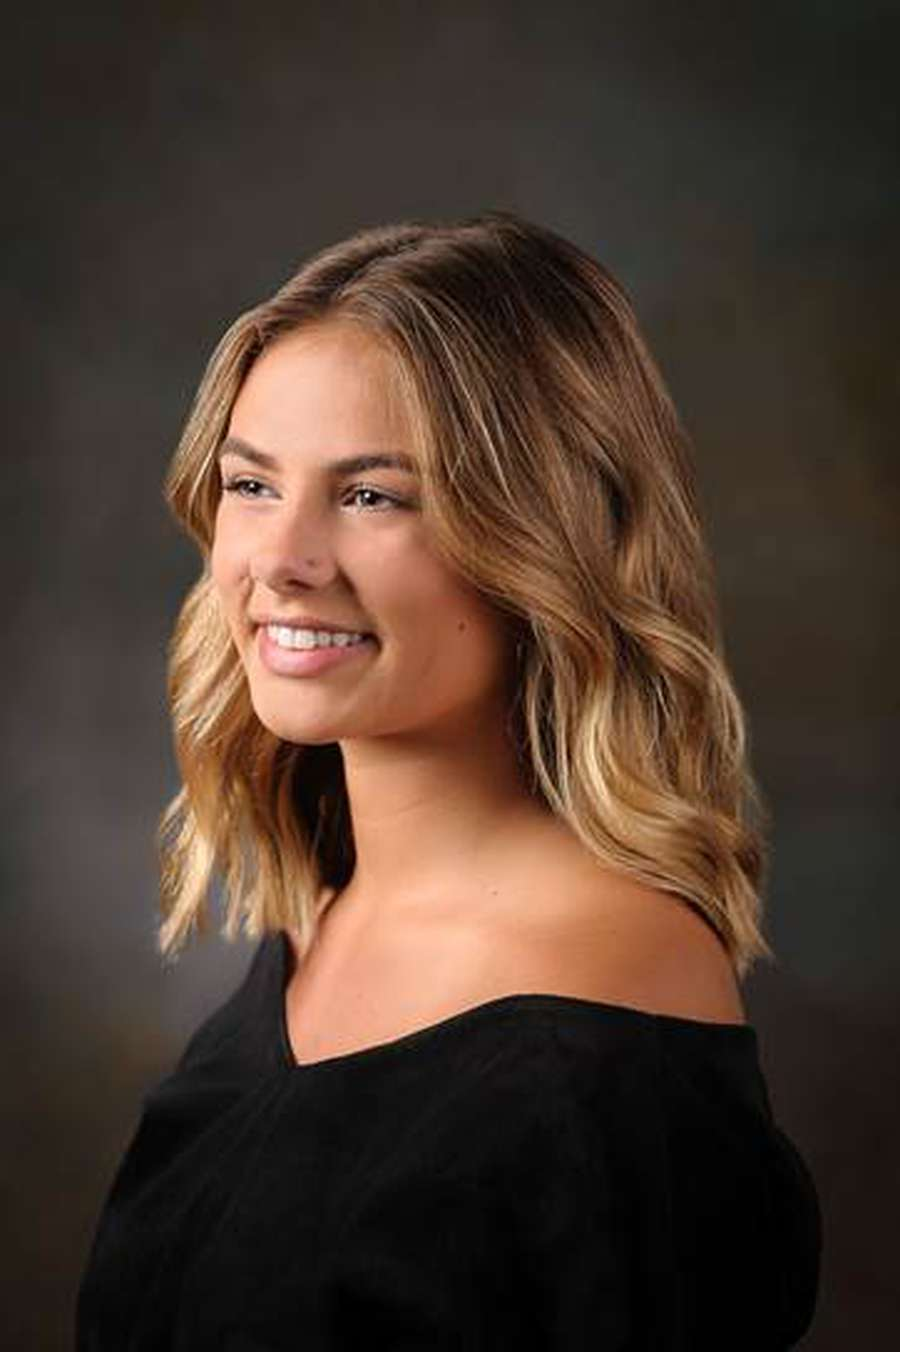 Carlie Elizabeth Haagsma is the 2018 salutatorian at Indian Rocks Christian School.